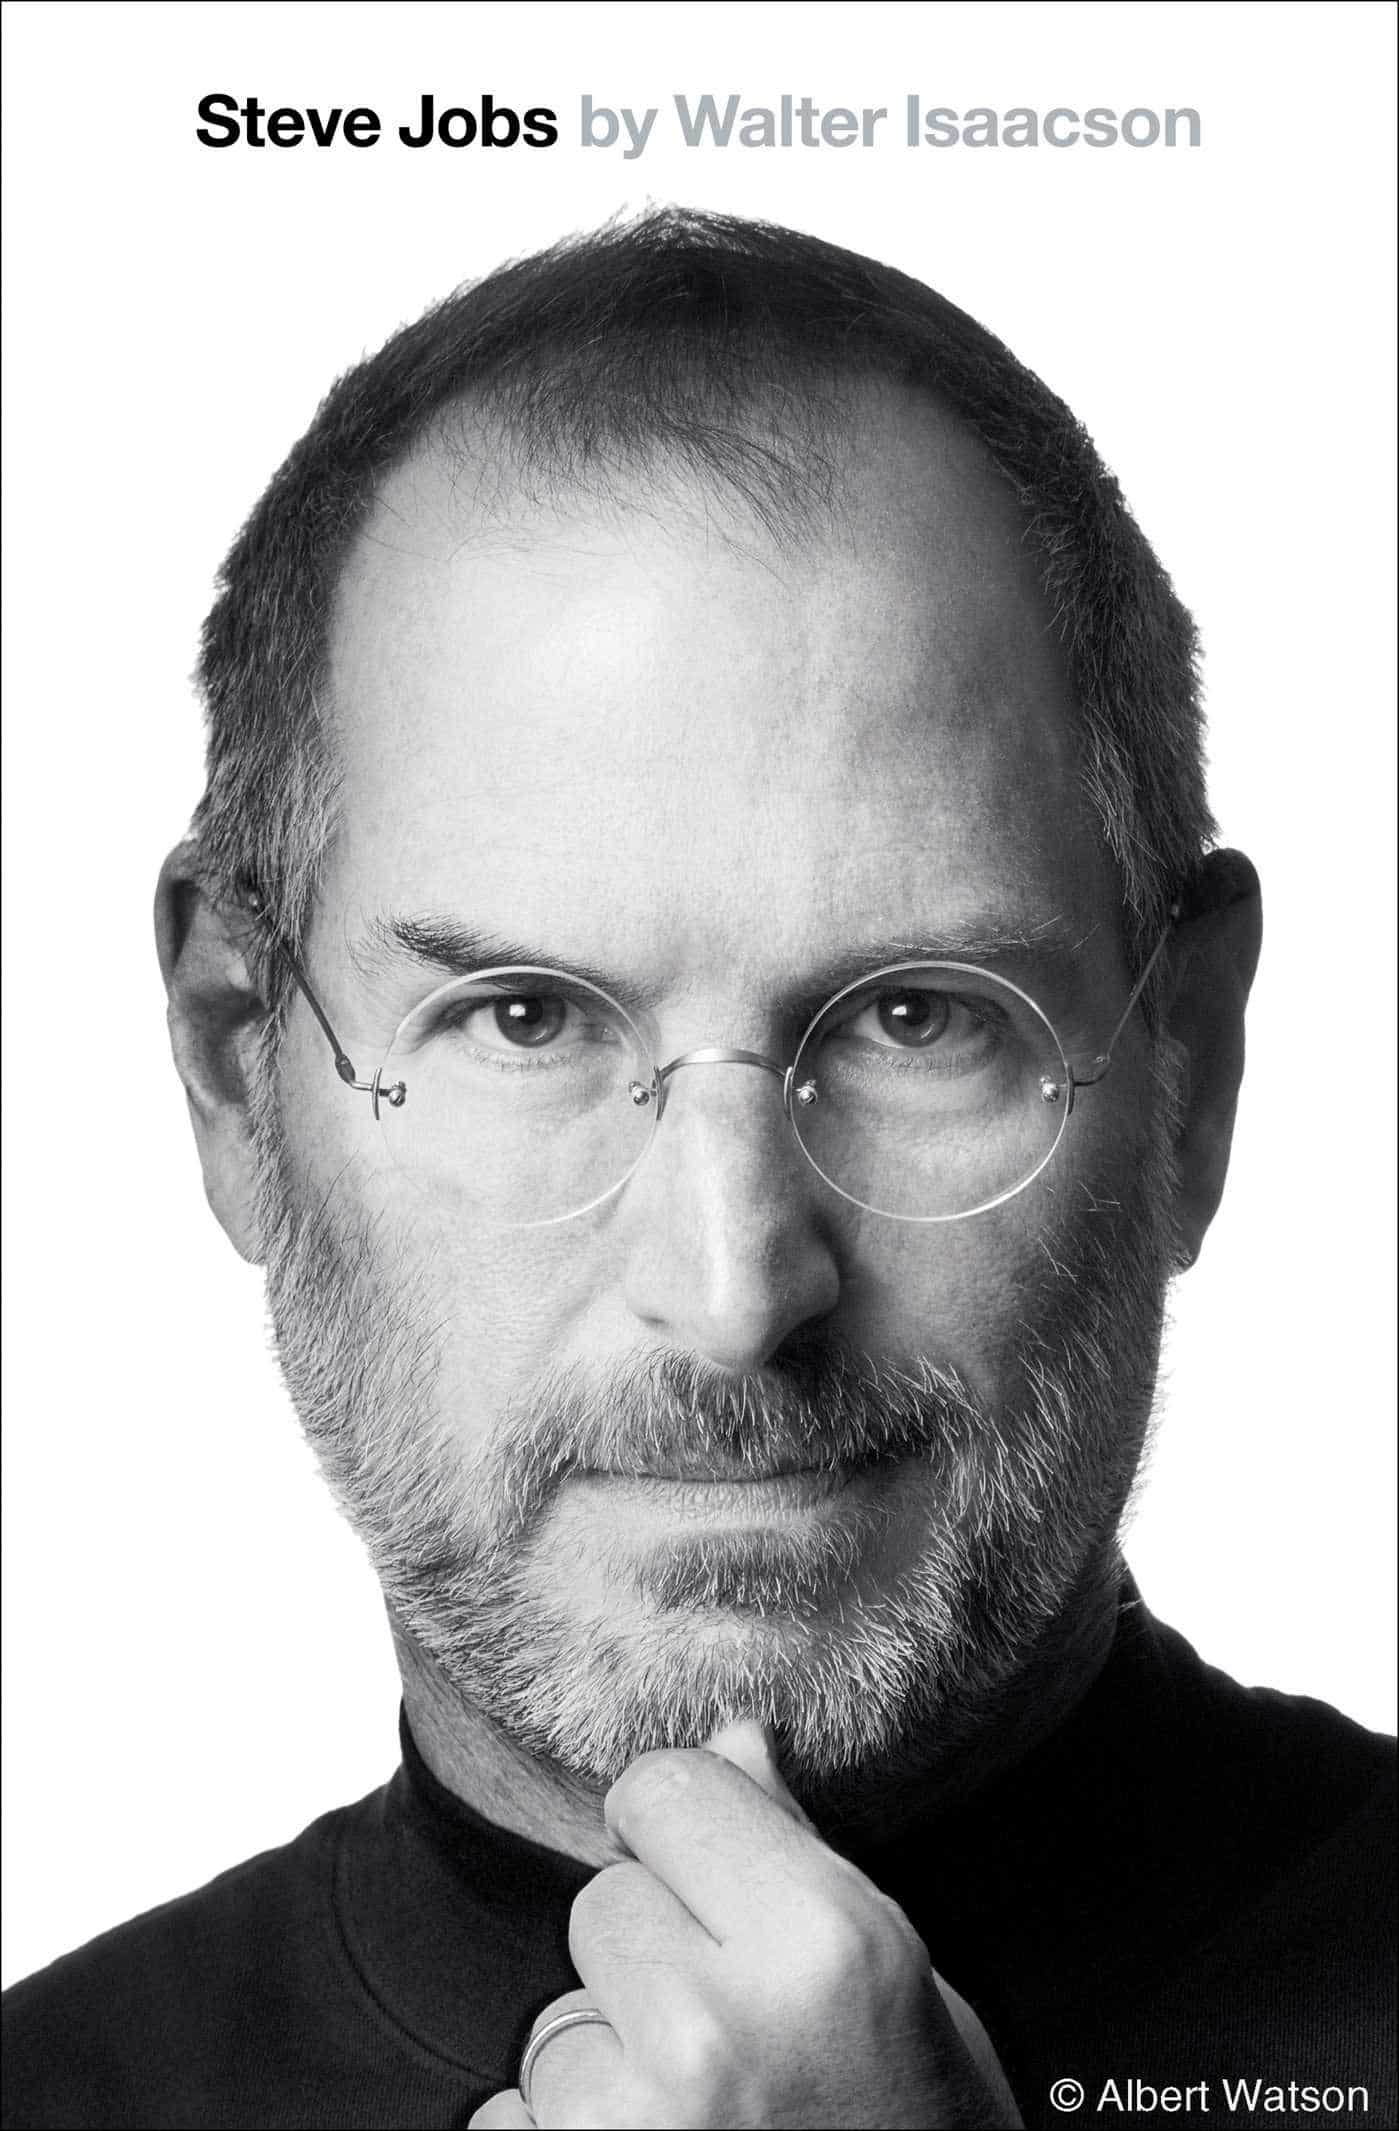 Steve Jobs Biography - Book cover